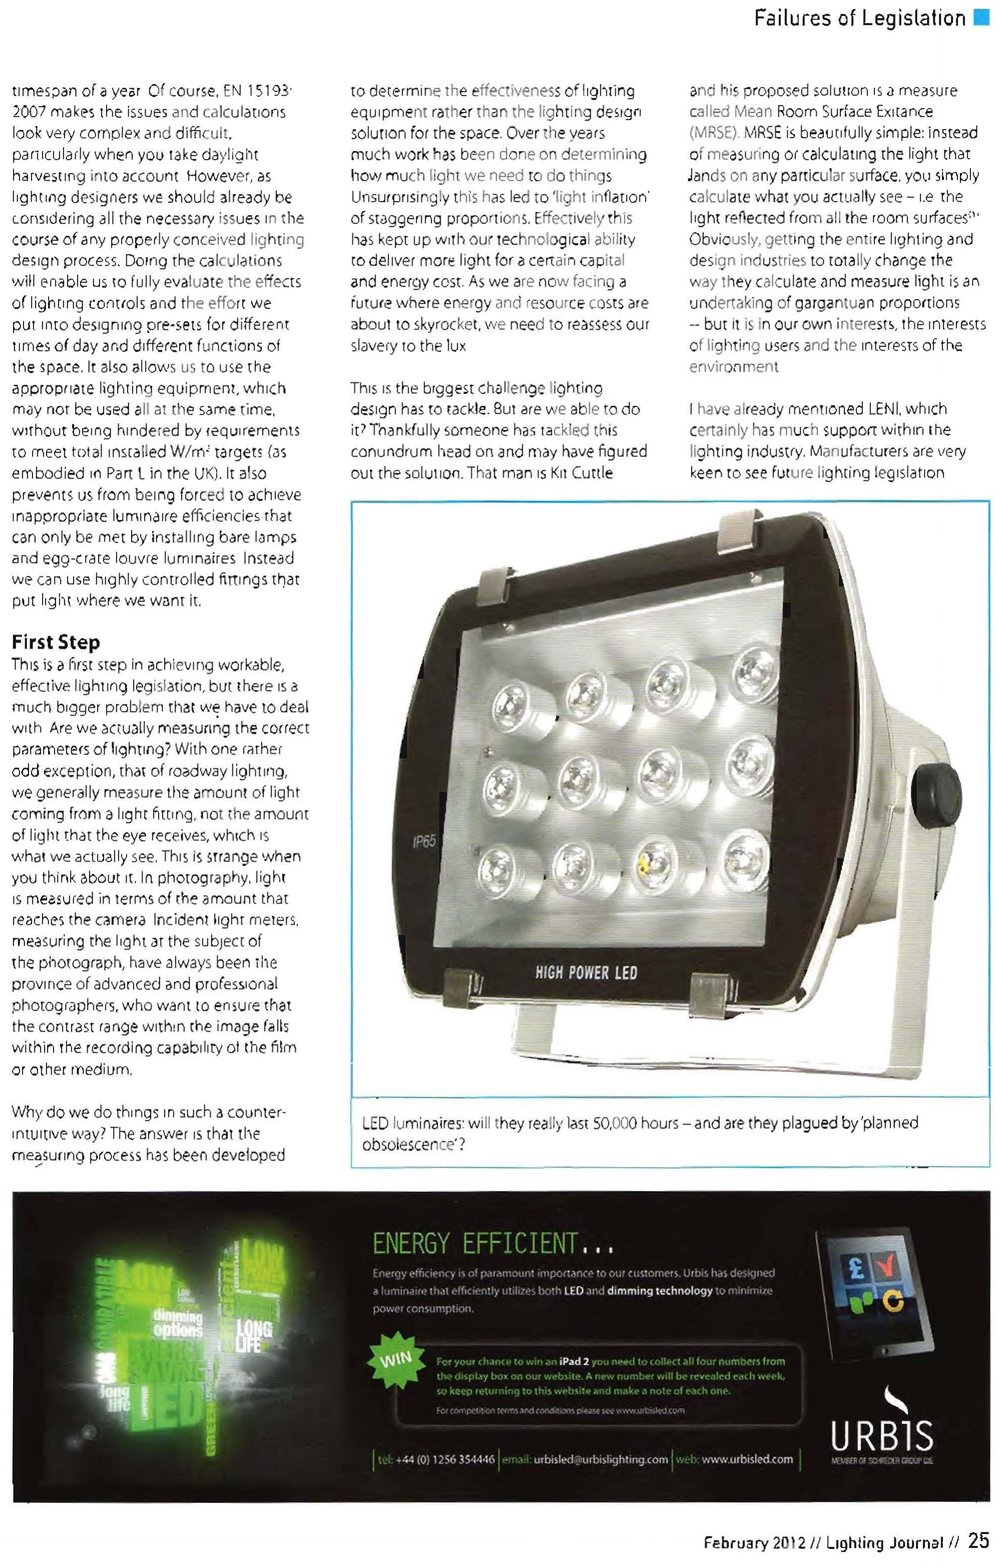 2012_Lighting_Legislation_Fail_Page_5